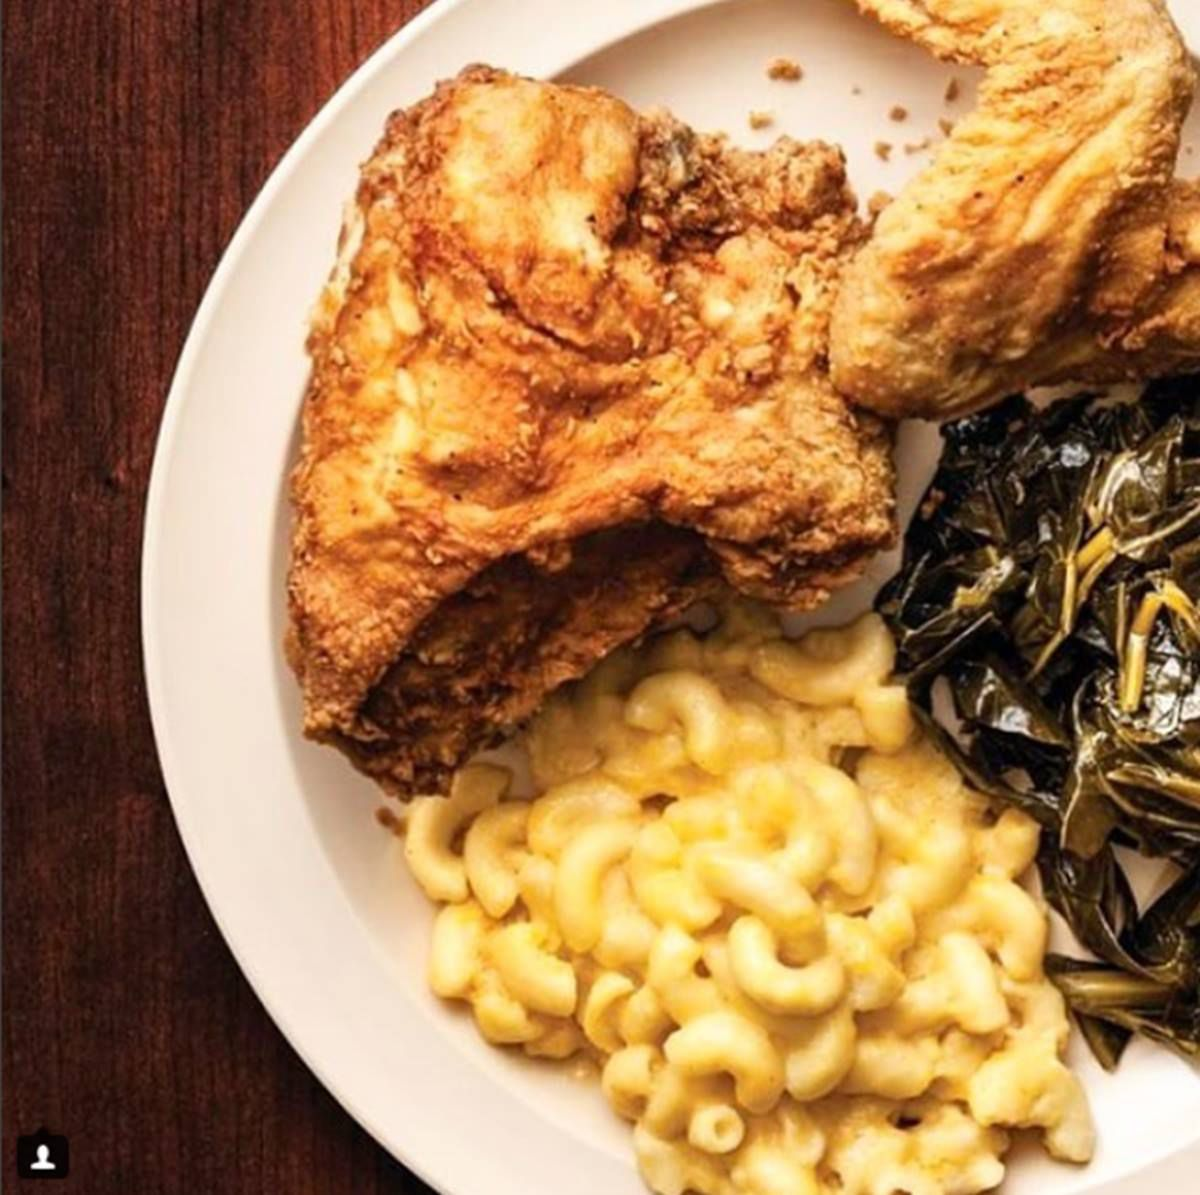 Fried chicken, collards, and mac and cheese  from Busy Bee Cafe in Vine City Atlanta